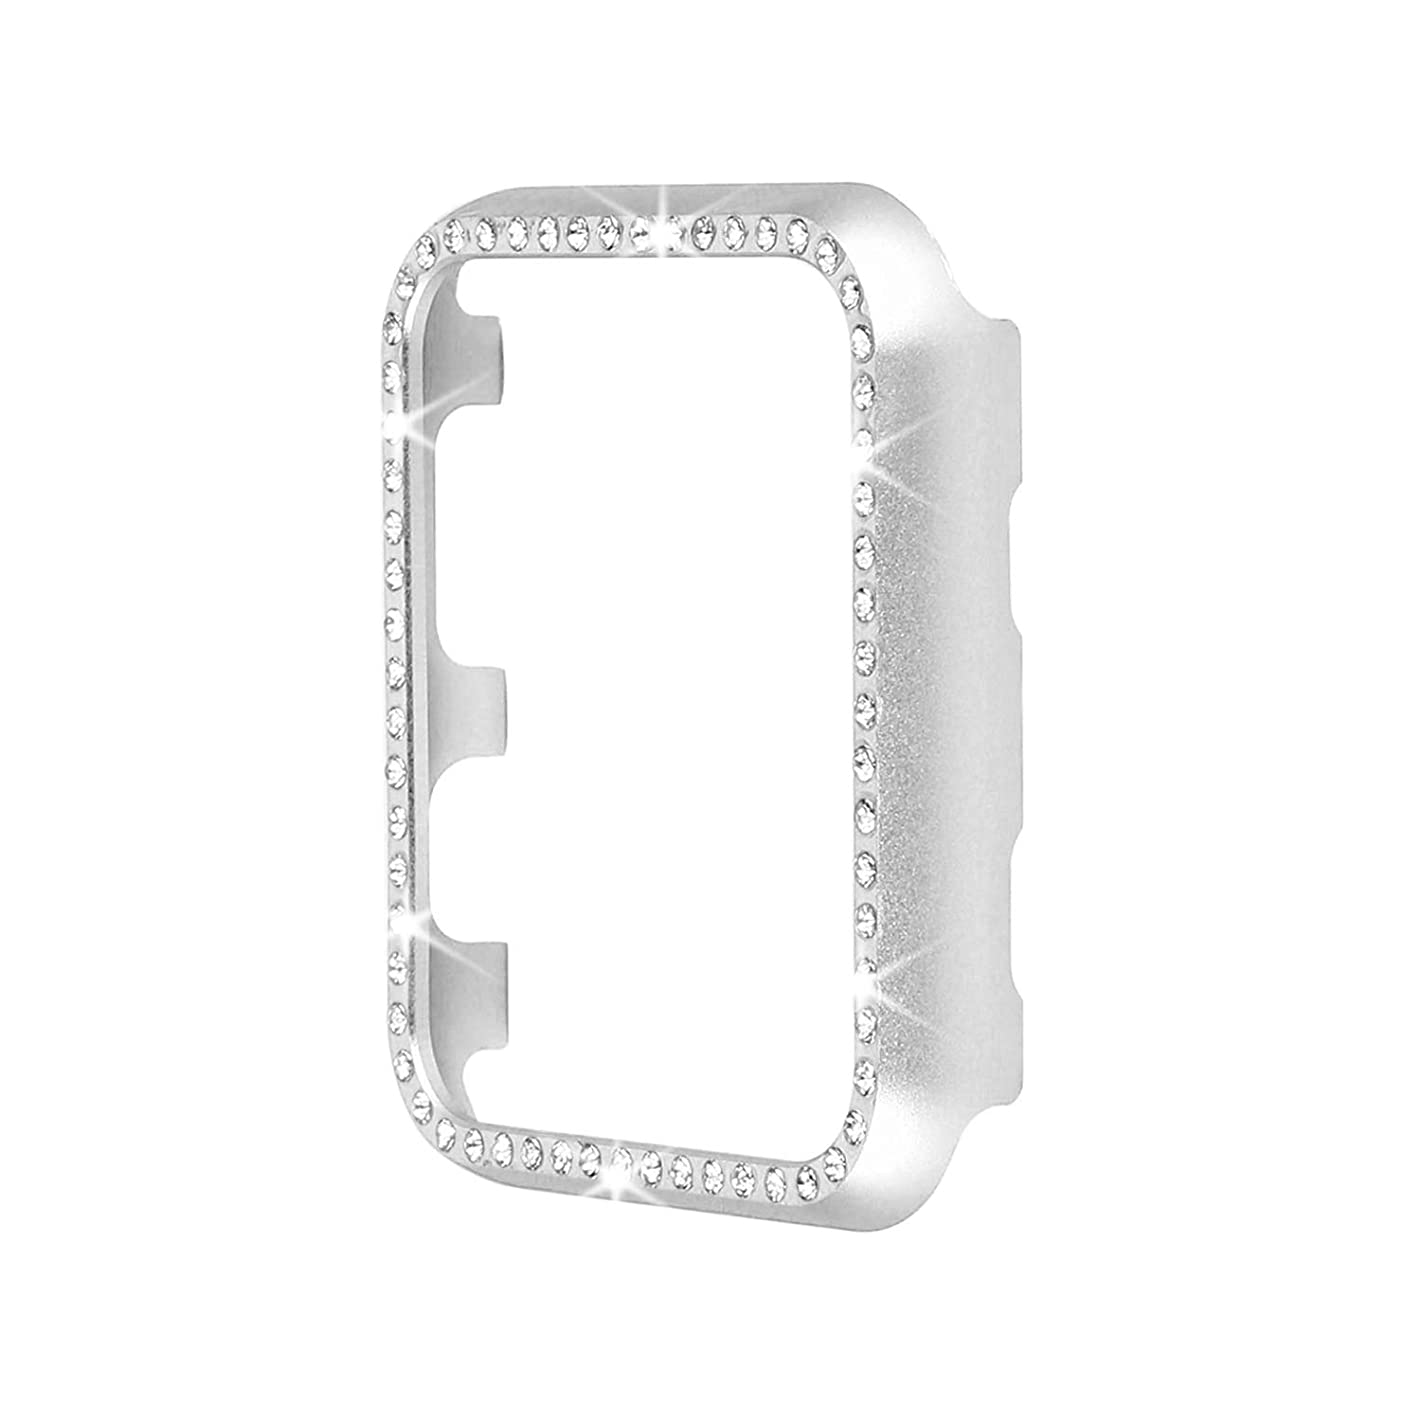 Aluminum Metal Watch Case with Crystal Diamonds Plate Protective Cover Ultra Thin Bumper Compatible for Apple iWatch Series 4 3 2 1_ Best 3D Bling Gift for Your iWatch (Silver Bling, 44mm)